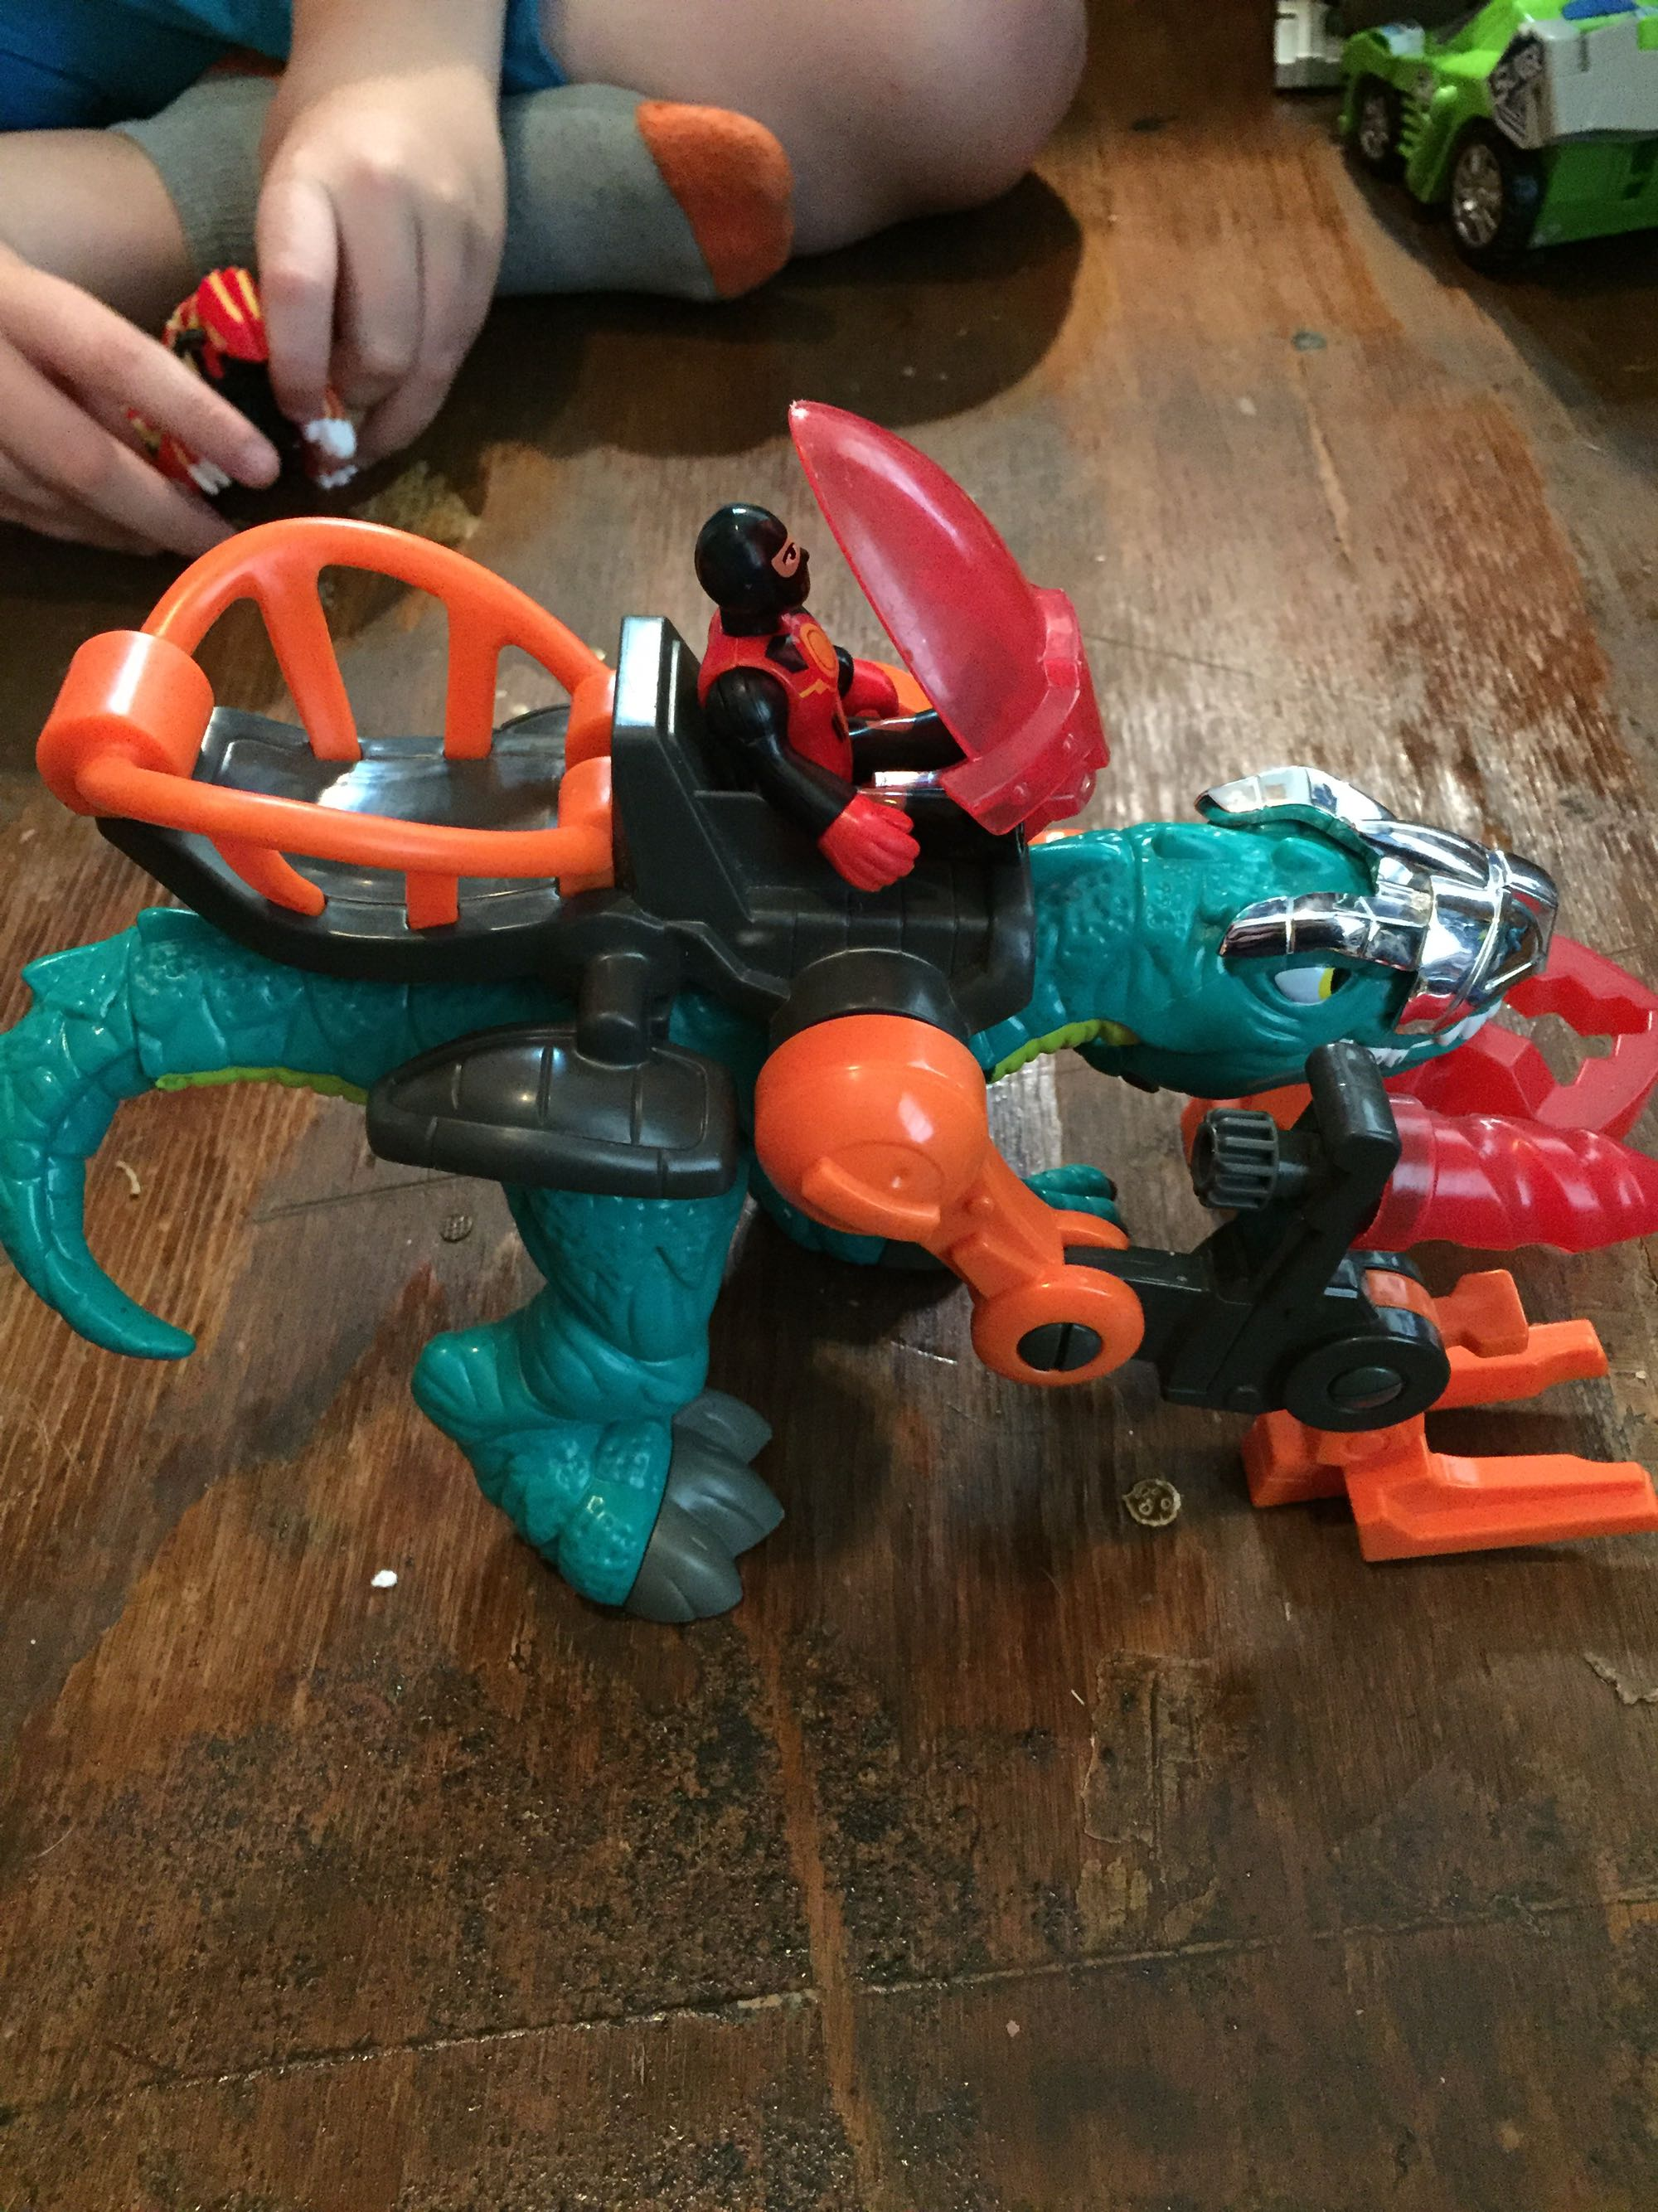 Fisher Price Imaginext Dinosaur- Allosaurus